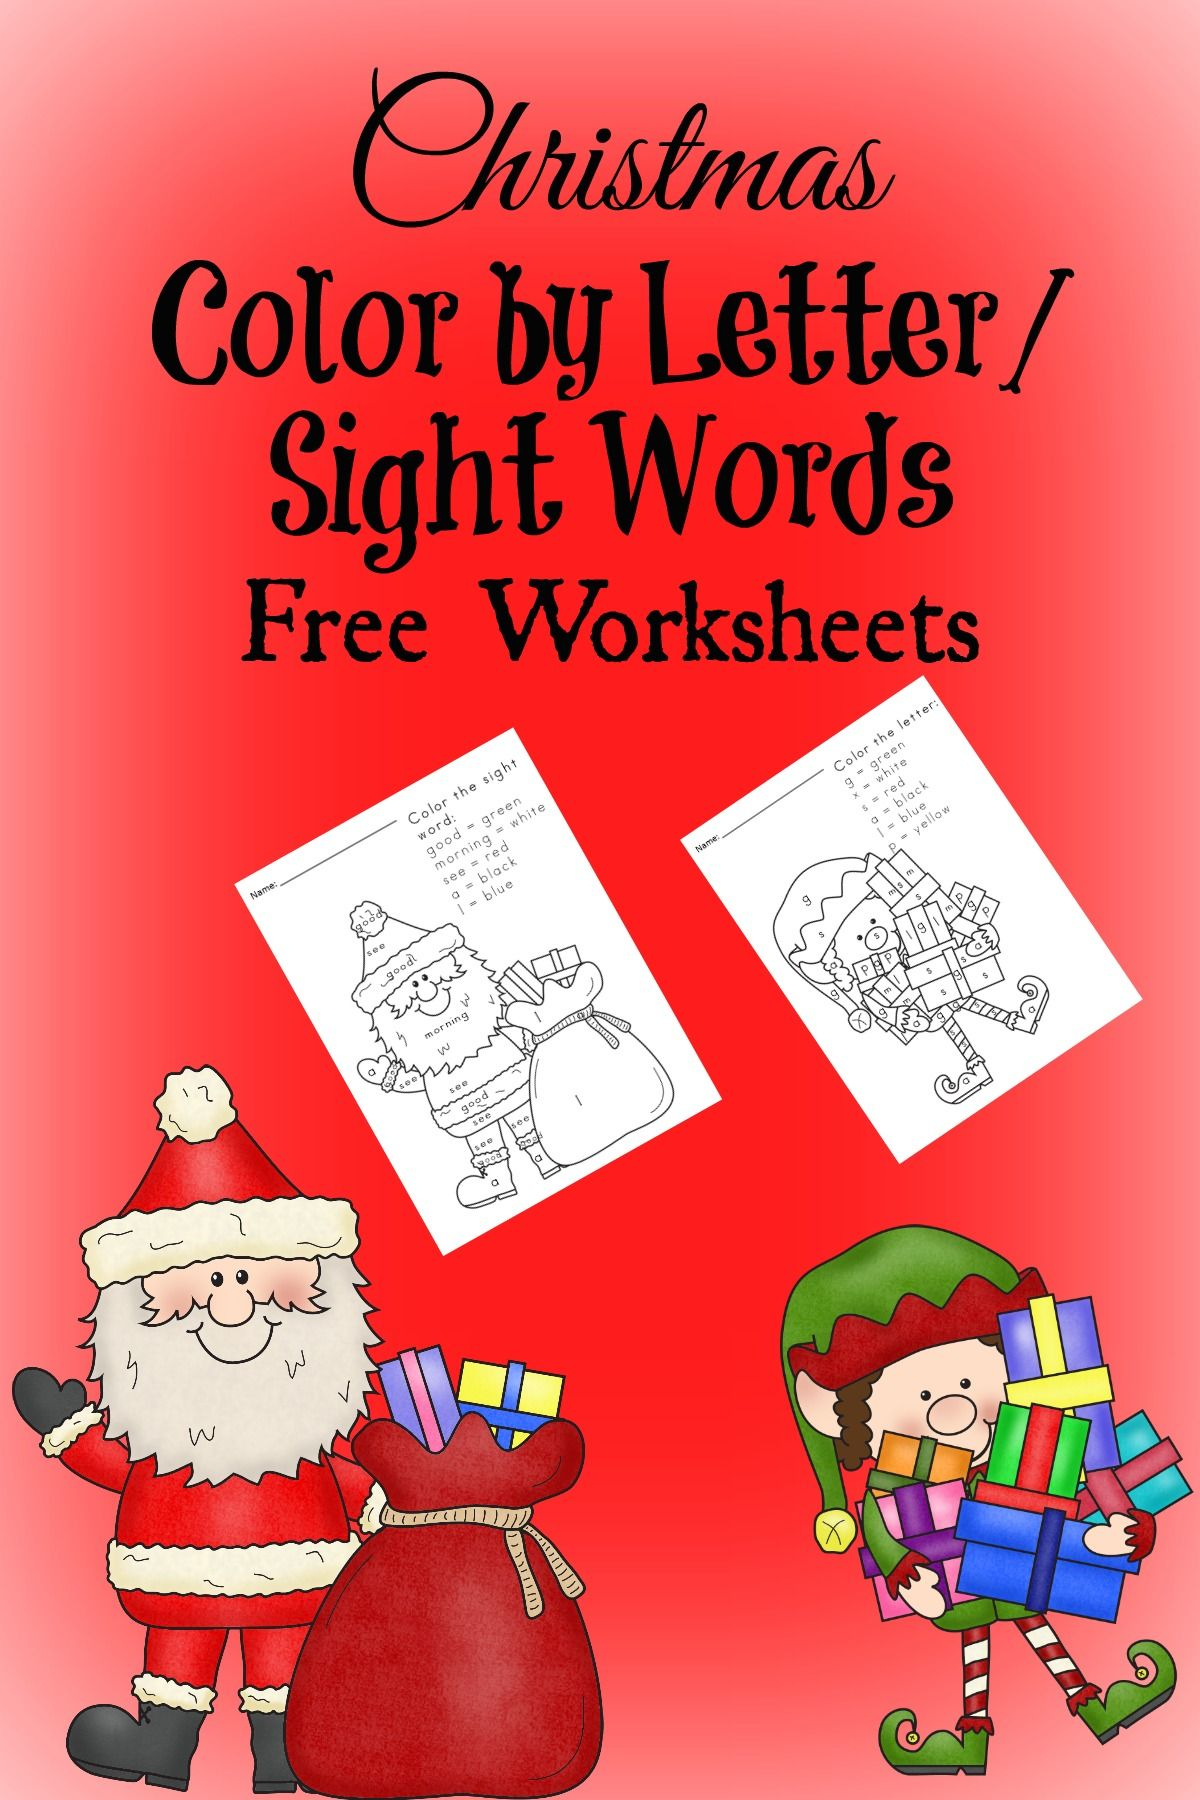 free christmas worksheets for kids color by letter sight word literacy christmas. Black Bedroom Furniture Sets. Home Design Ideas